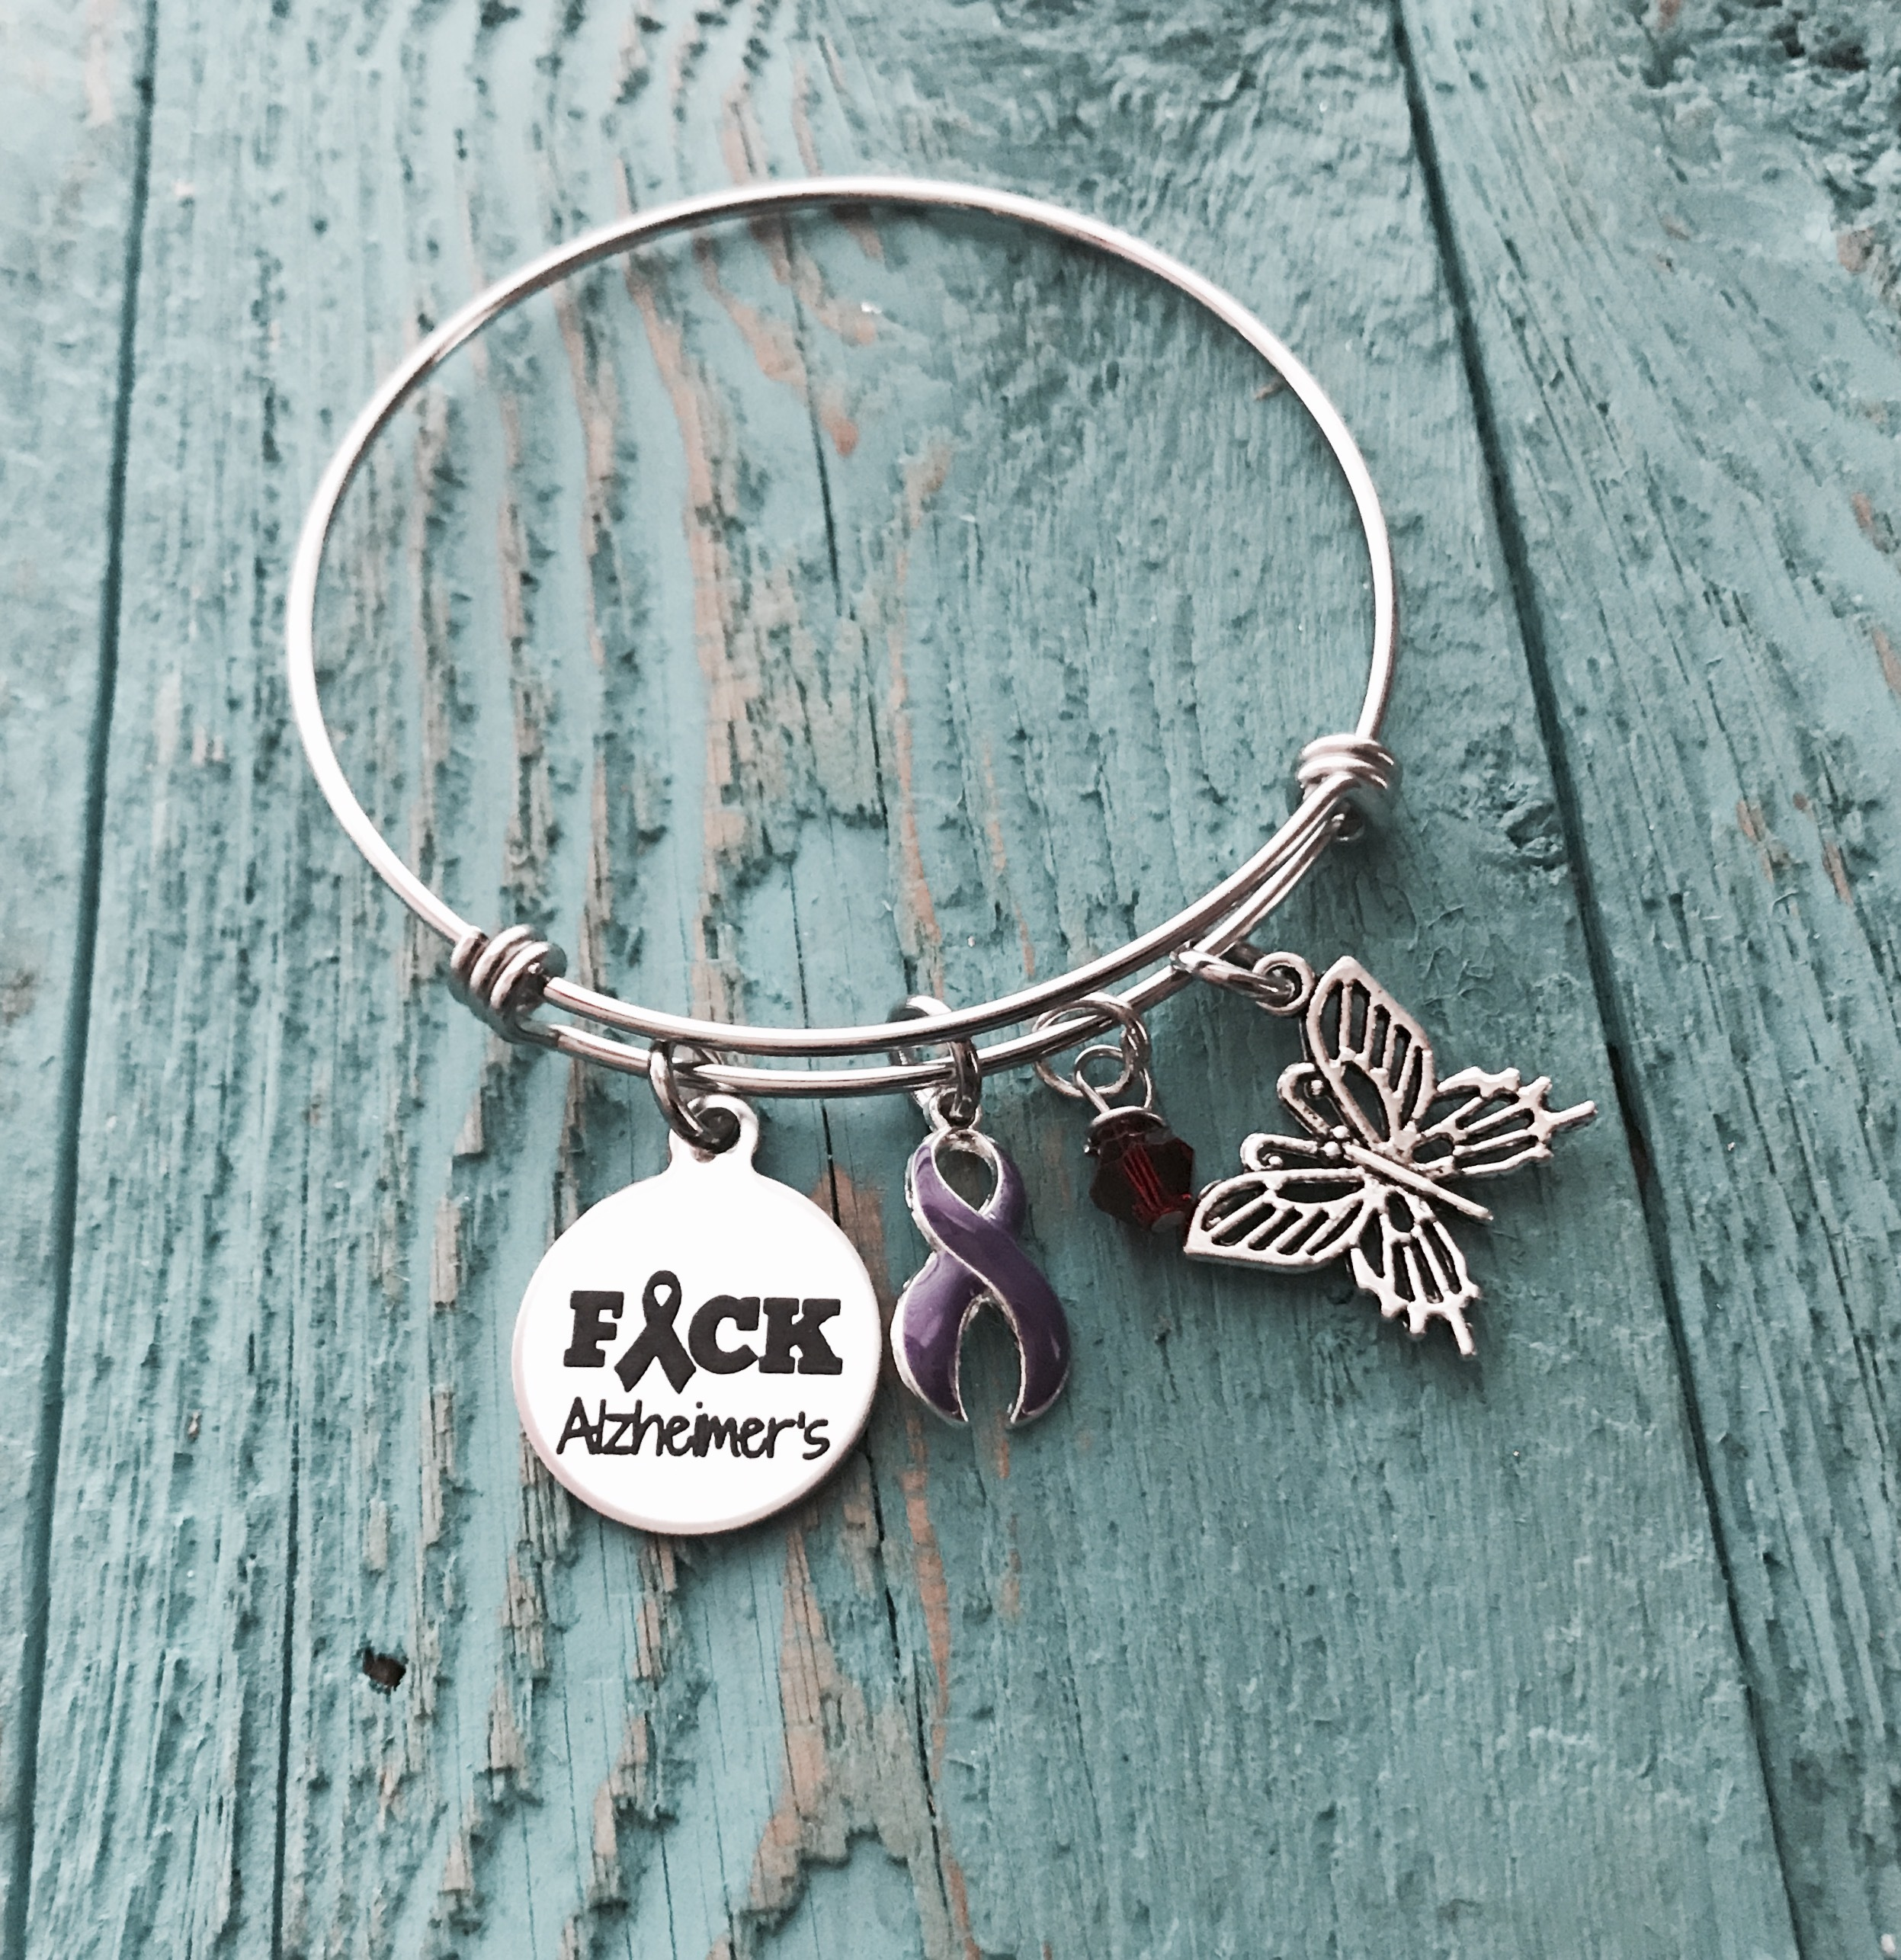 migraine s bracelet pin awarenesspurple epilepsy awareness lupus disease crohn by ribboncrohn alzheimer ejaidesigns